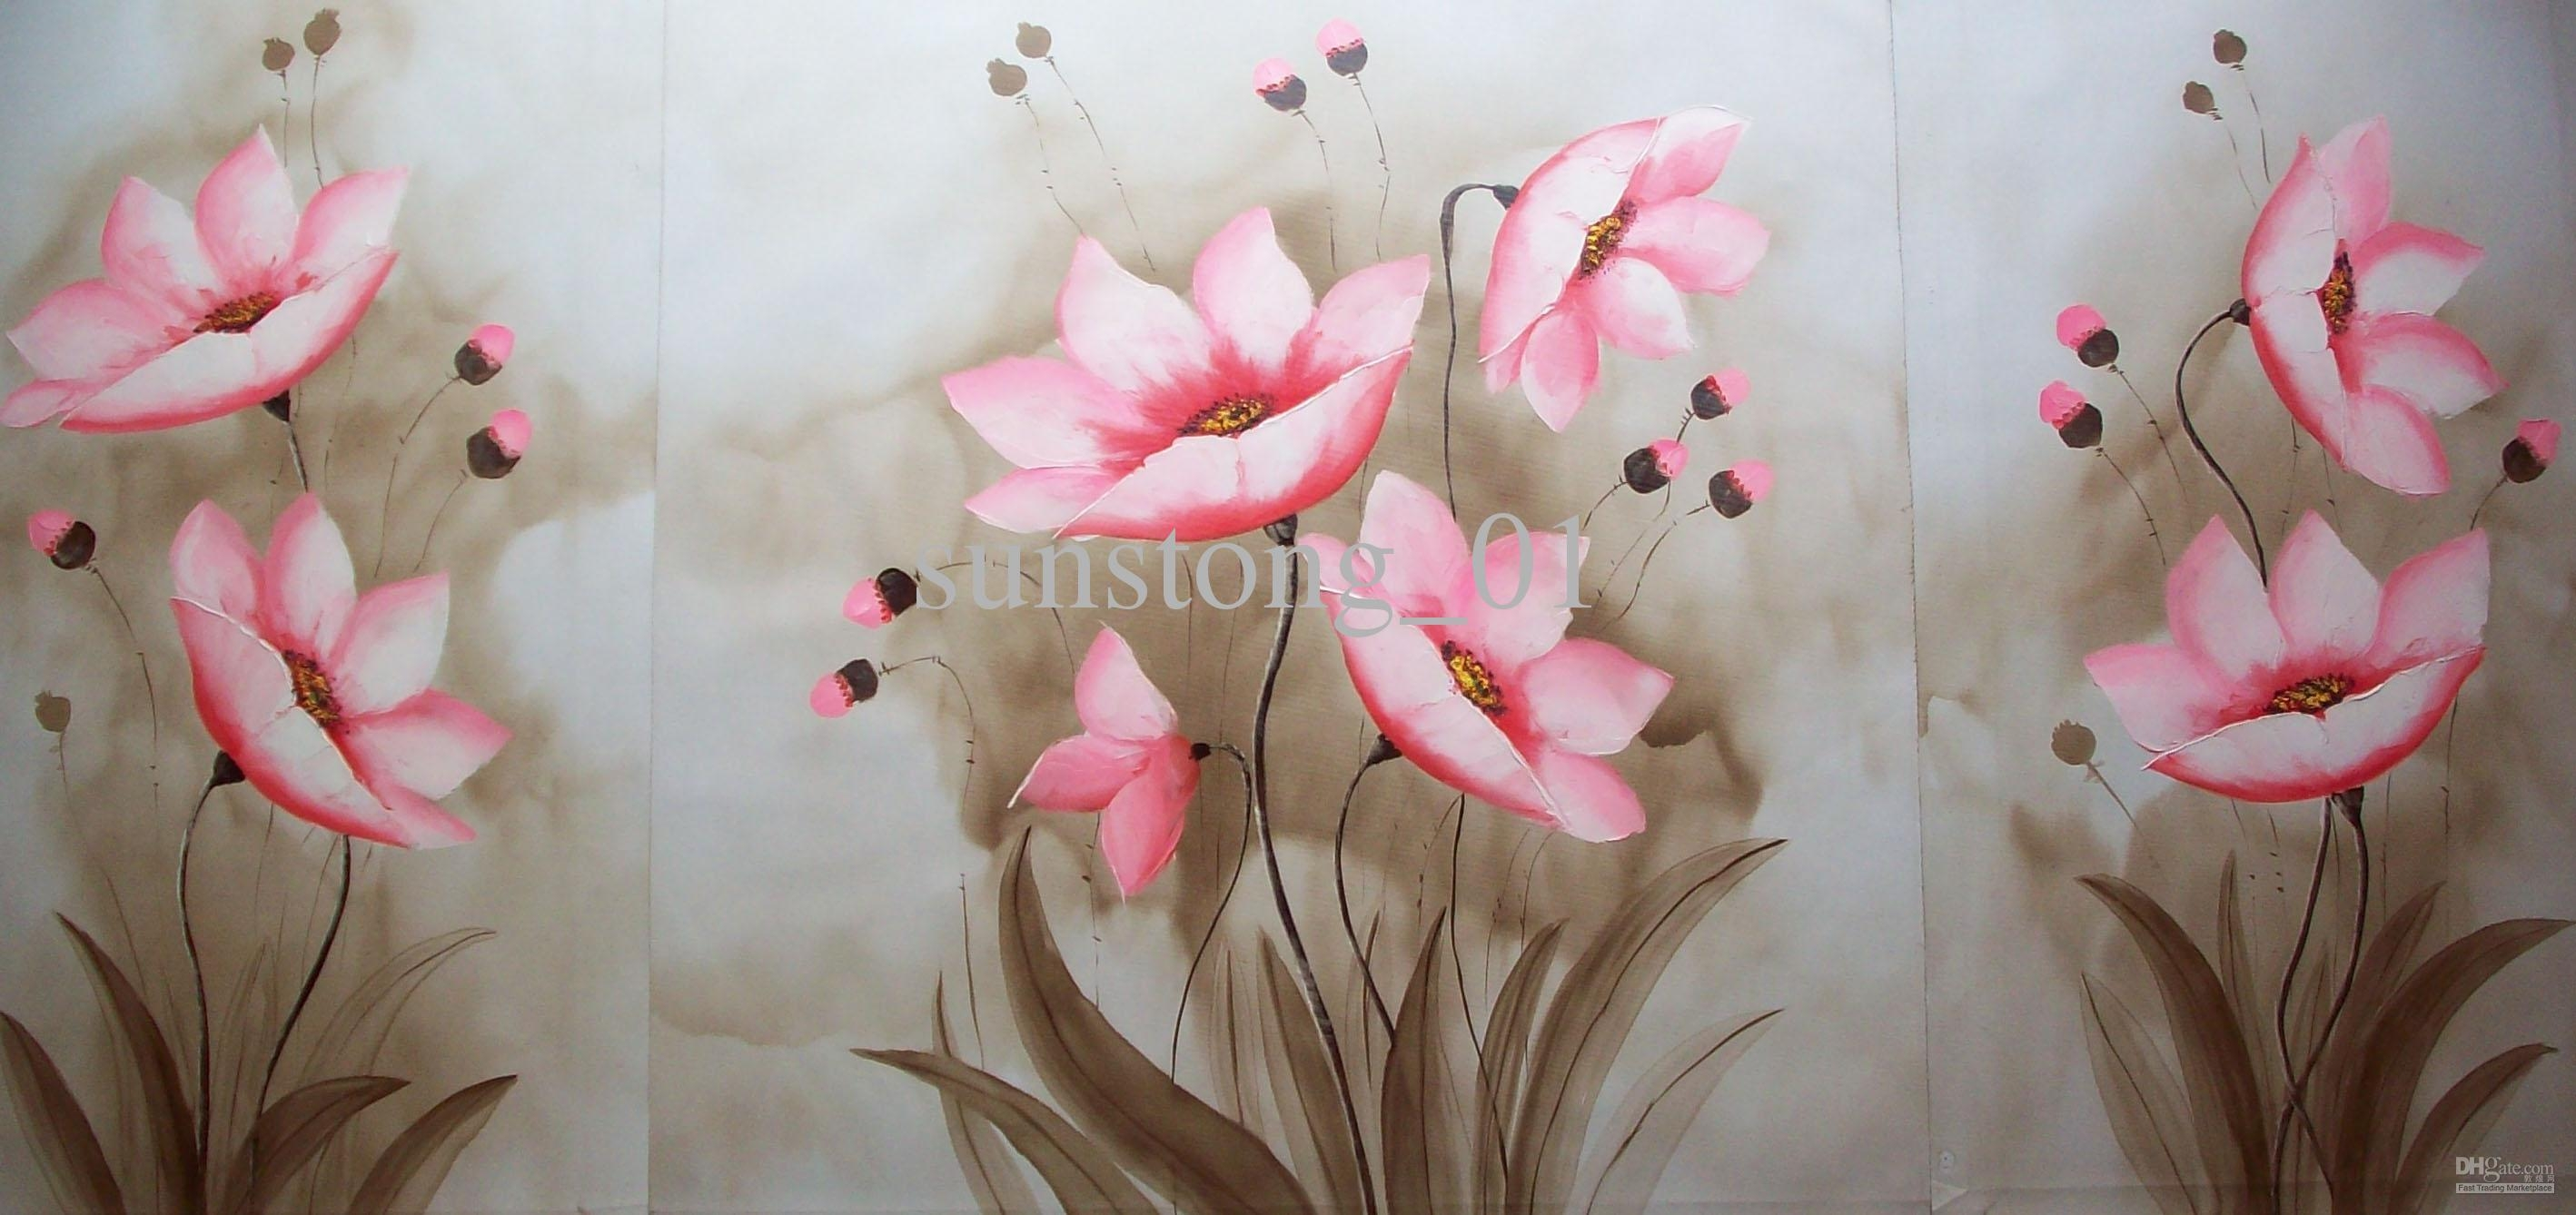 2017 Impression Group Oil Painting Nice Pink Flowers In Lake Pertaining To Pink Flower Wall Art (View 10 of 20)